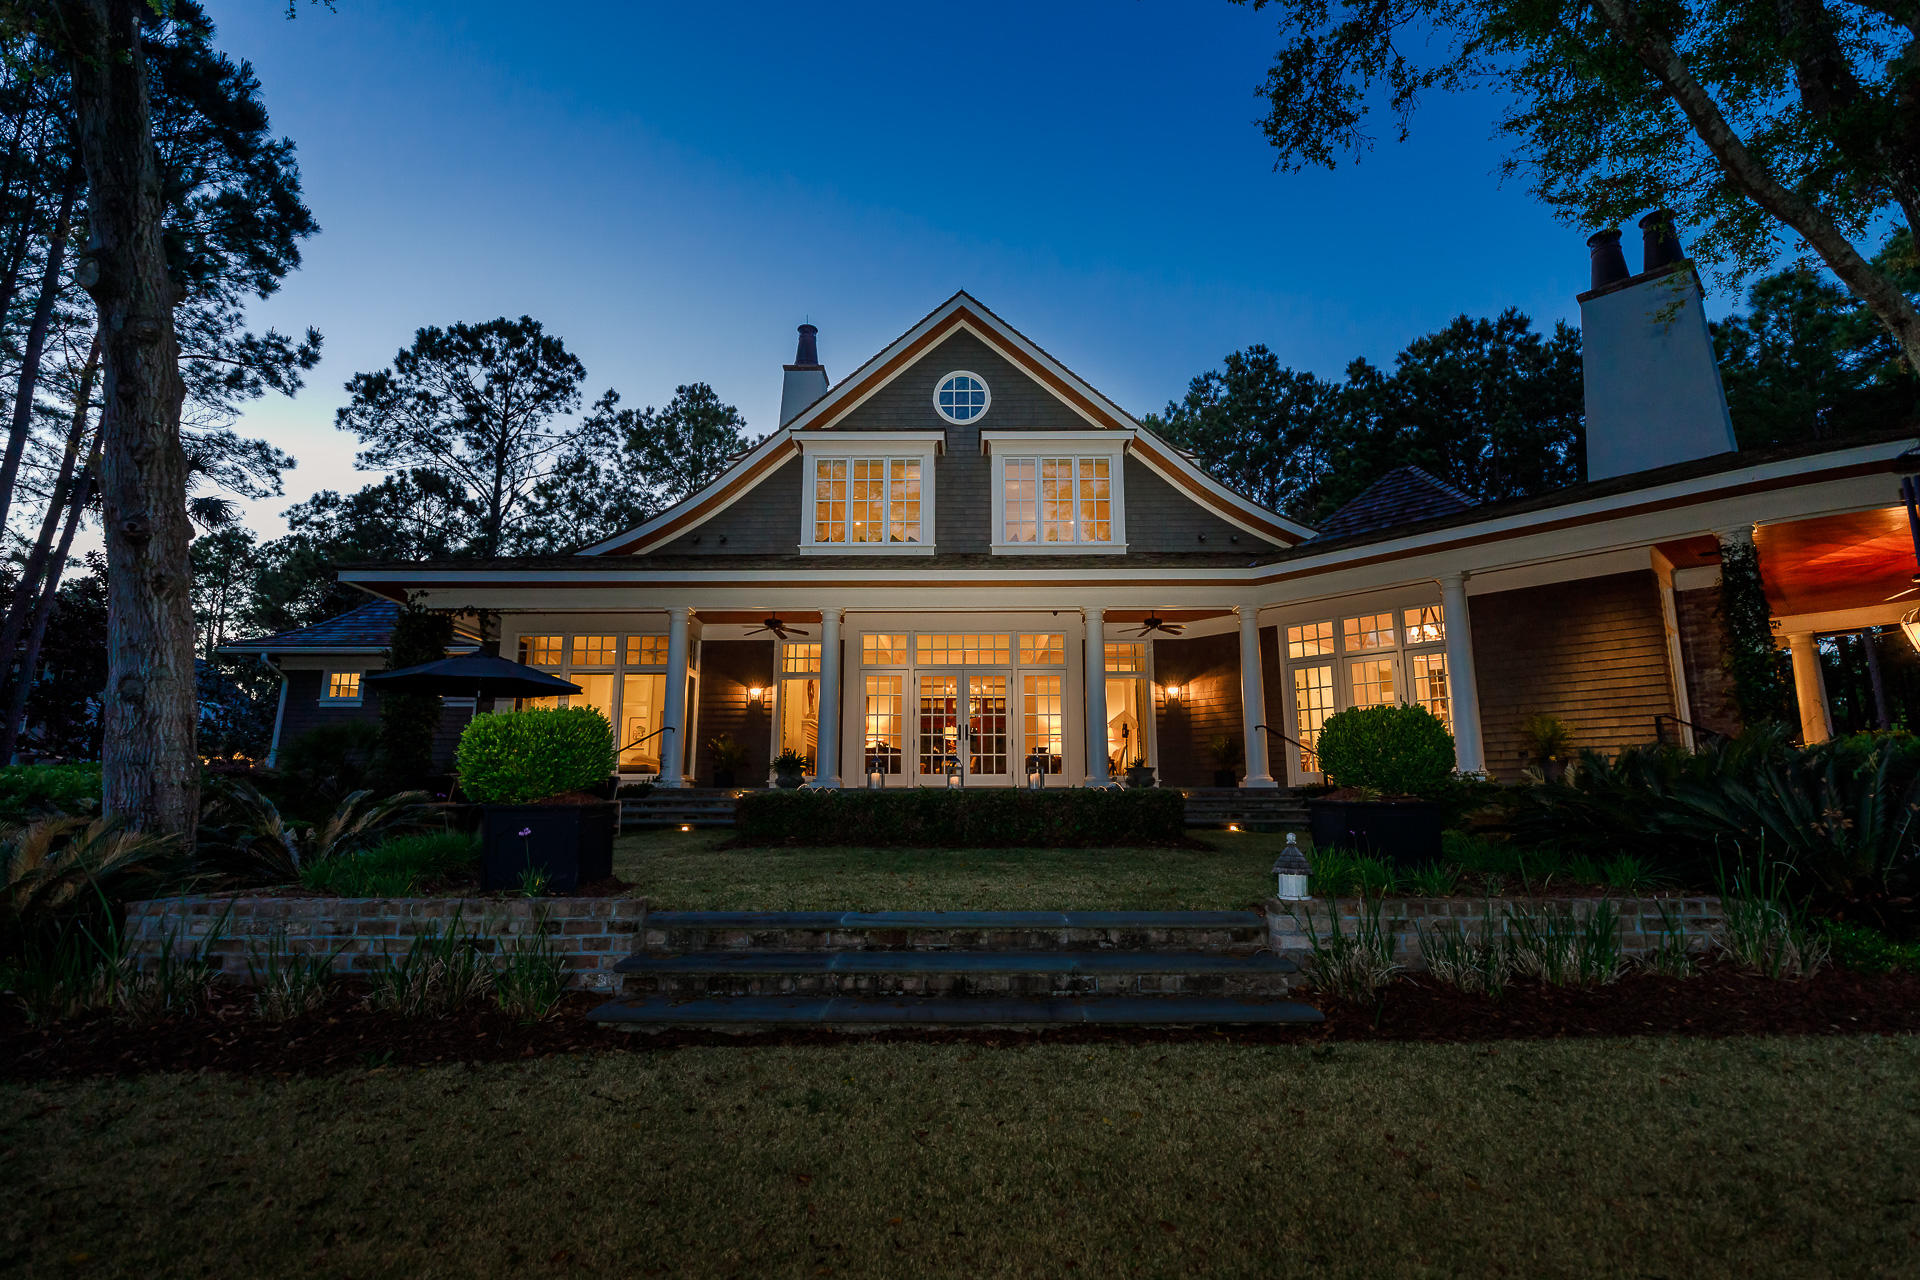 Photo of 160 Nicholas Carteret Cir, Johns Island, SC 29455